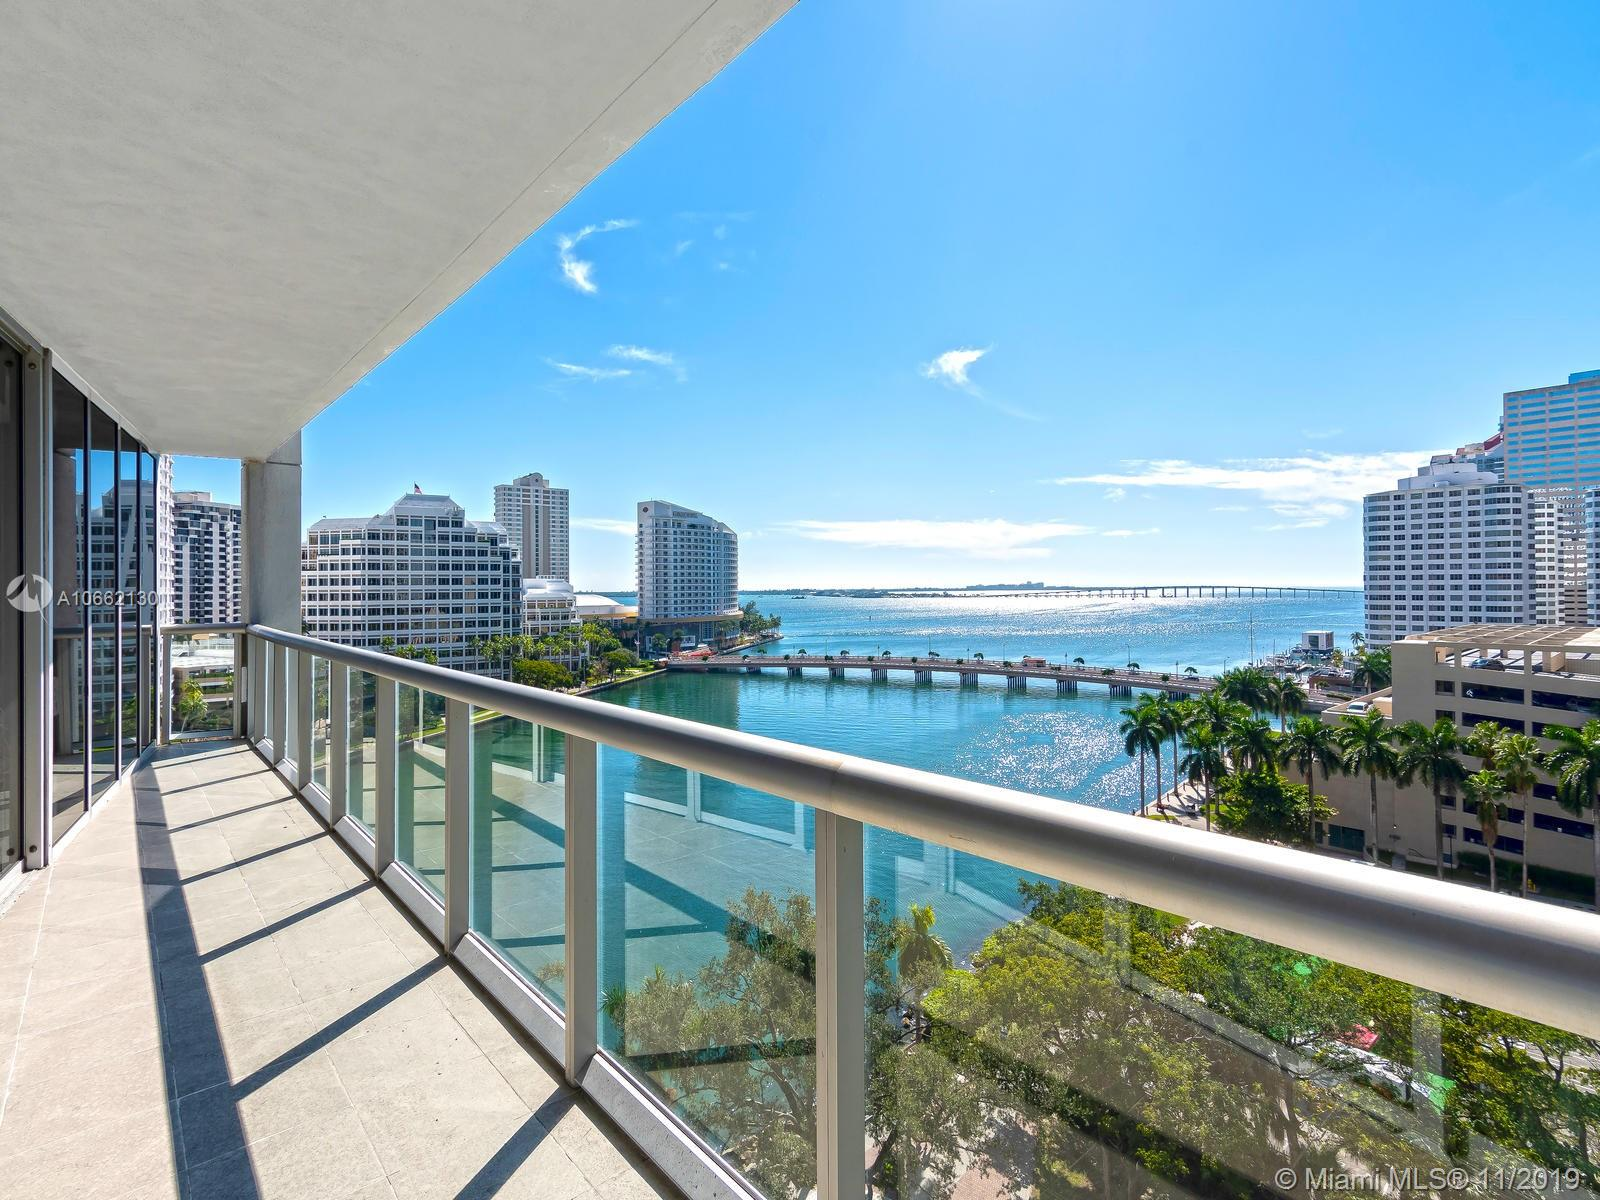 ICON BRICKELL NO TWO CONDO UNIT 1001. Motivated Seller! Spectacular corner unit, 3 Beds, 2 Baths with amazing Bay views from every angle, marble & wood floors, European Kitchen, Large Balcony facing the Biscayne Bay, Enjoy the incredible Resor t Life Style this bldg offers theater, party and billiard room, gym, luxury spa, infinity pool, gourmet restaurants!